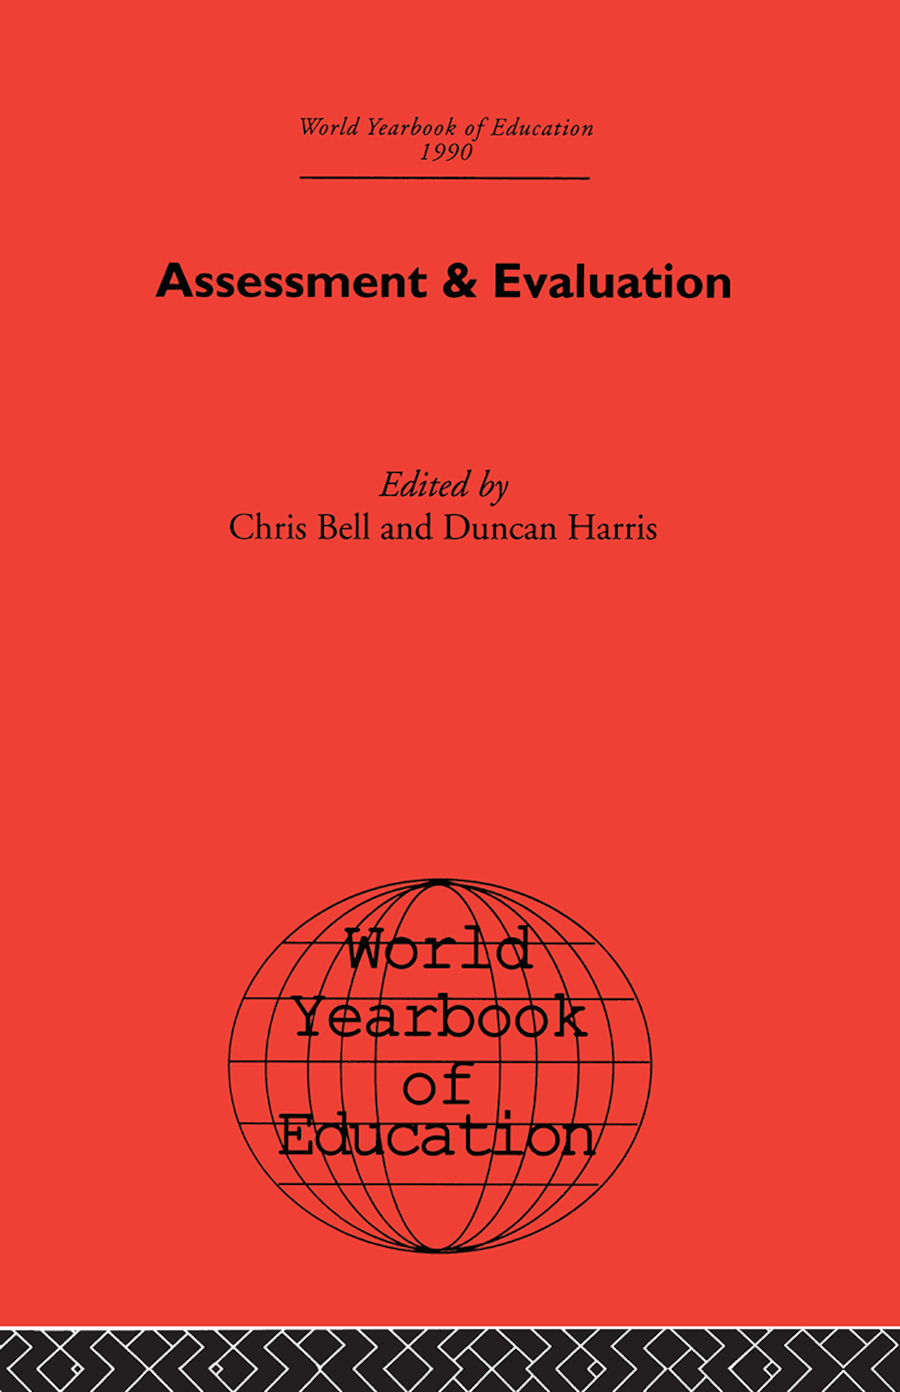 World Yearbook of Education 1990: Assessment & Evaluation book cover